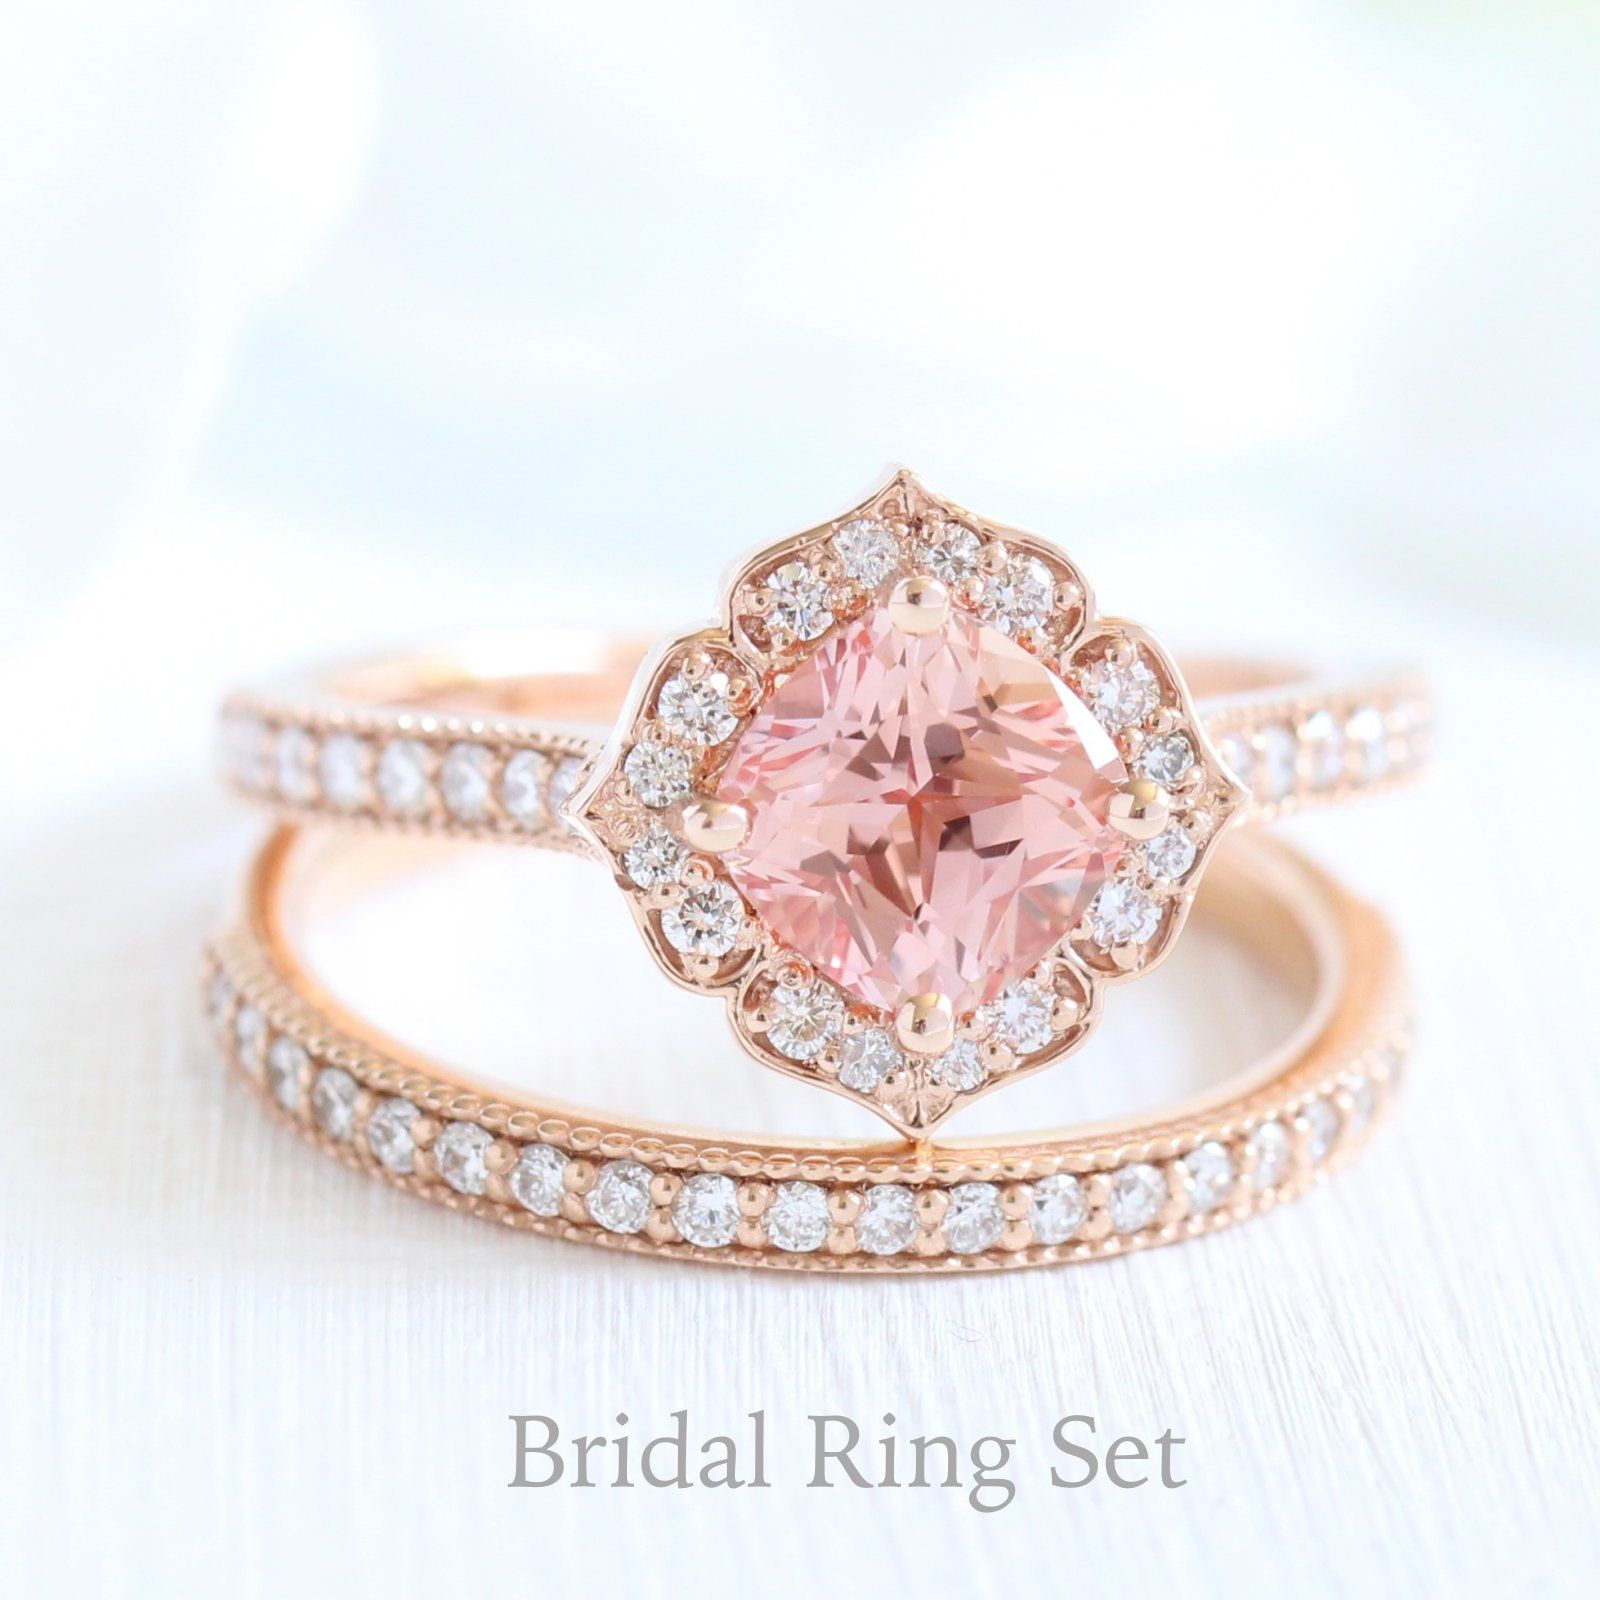 Mini Vintage Floral Ring in Milgrain Band w/ Champagne